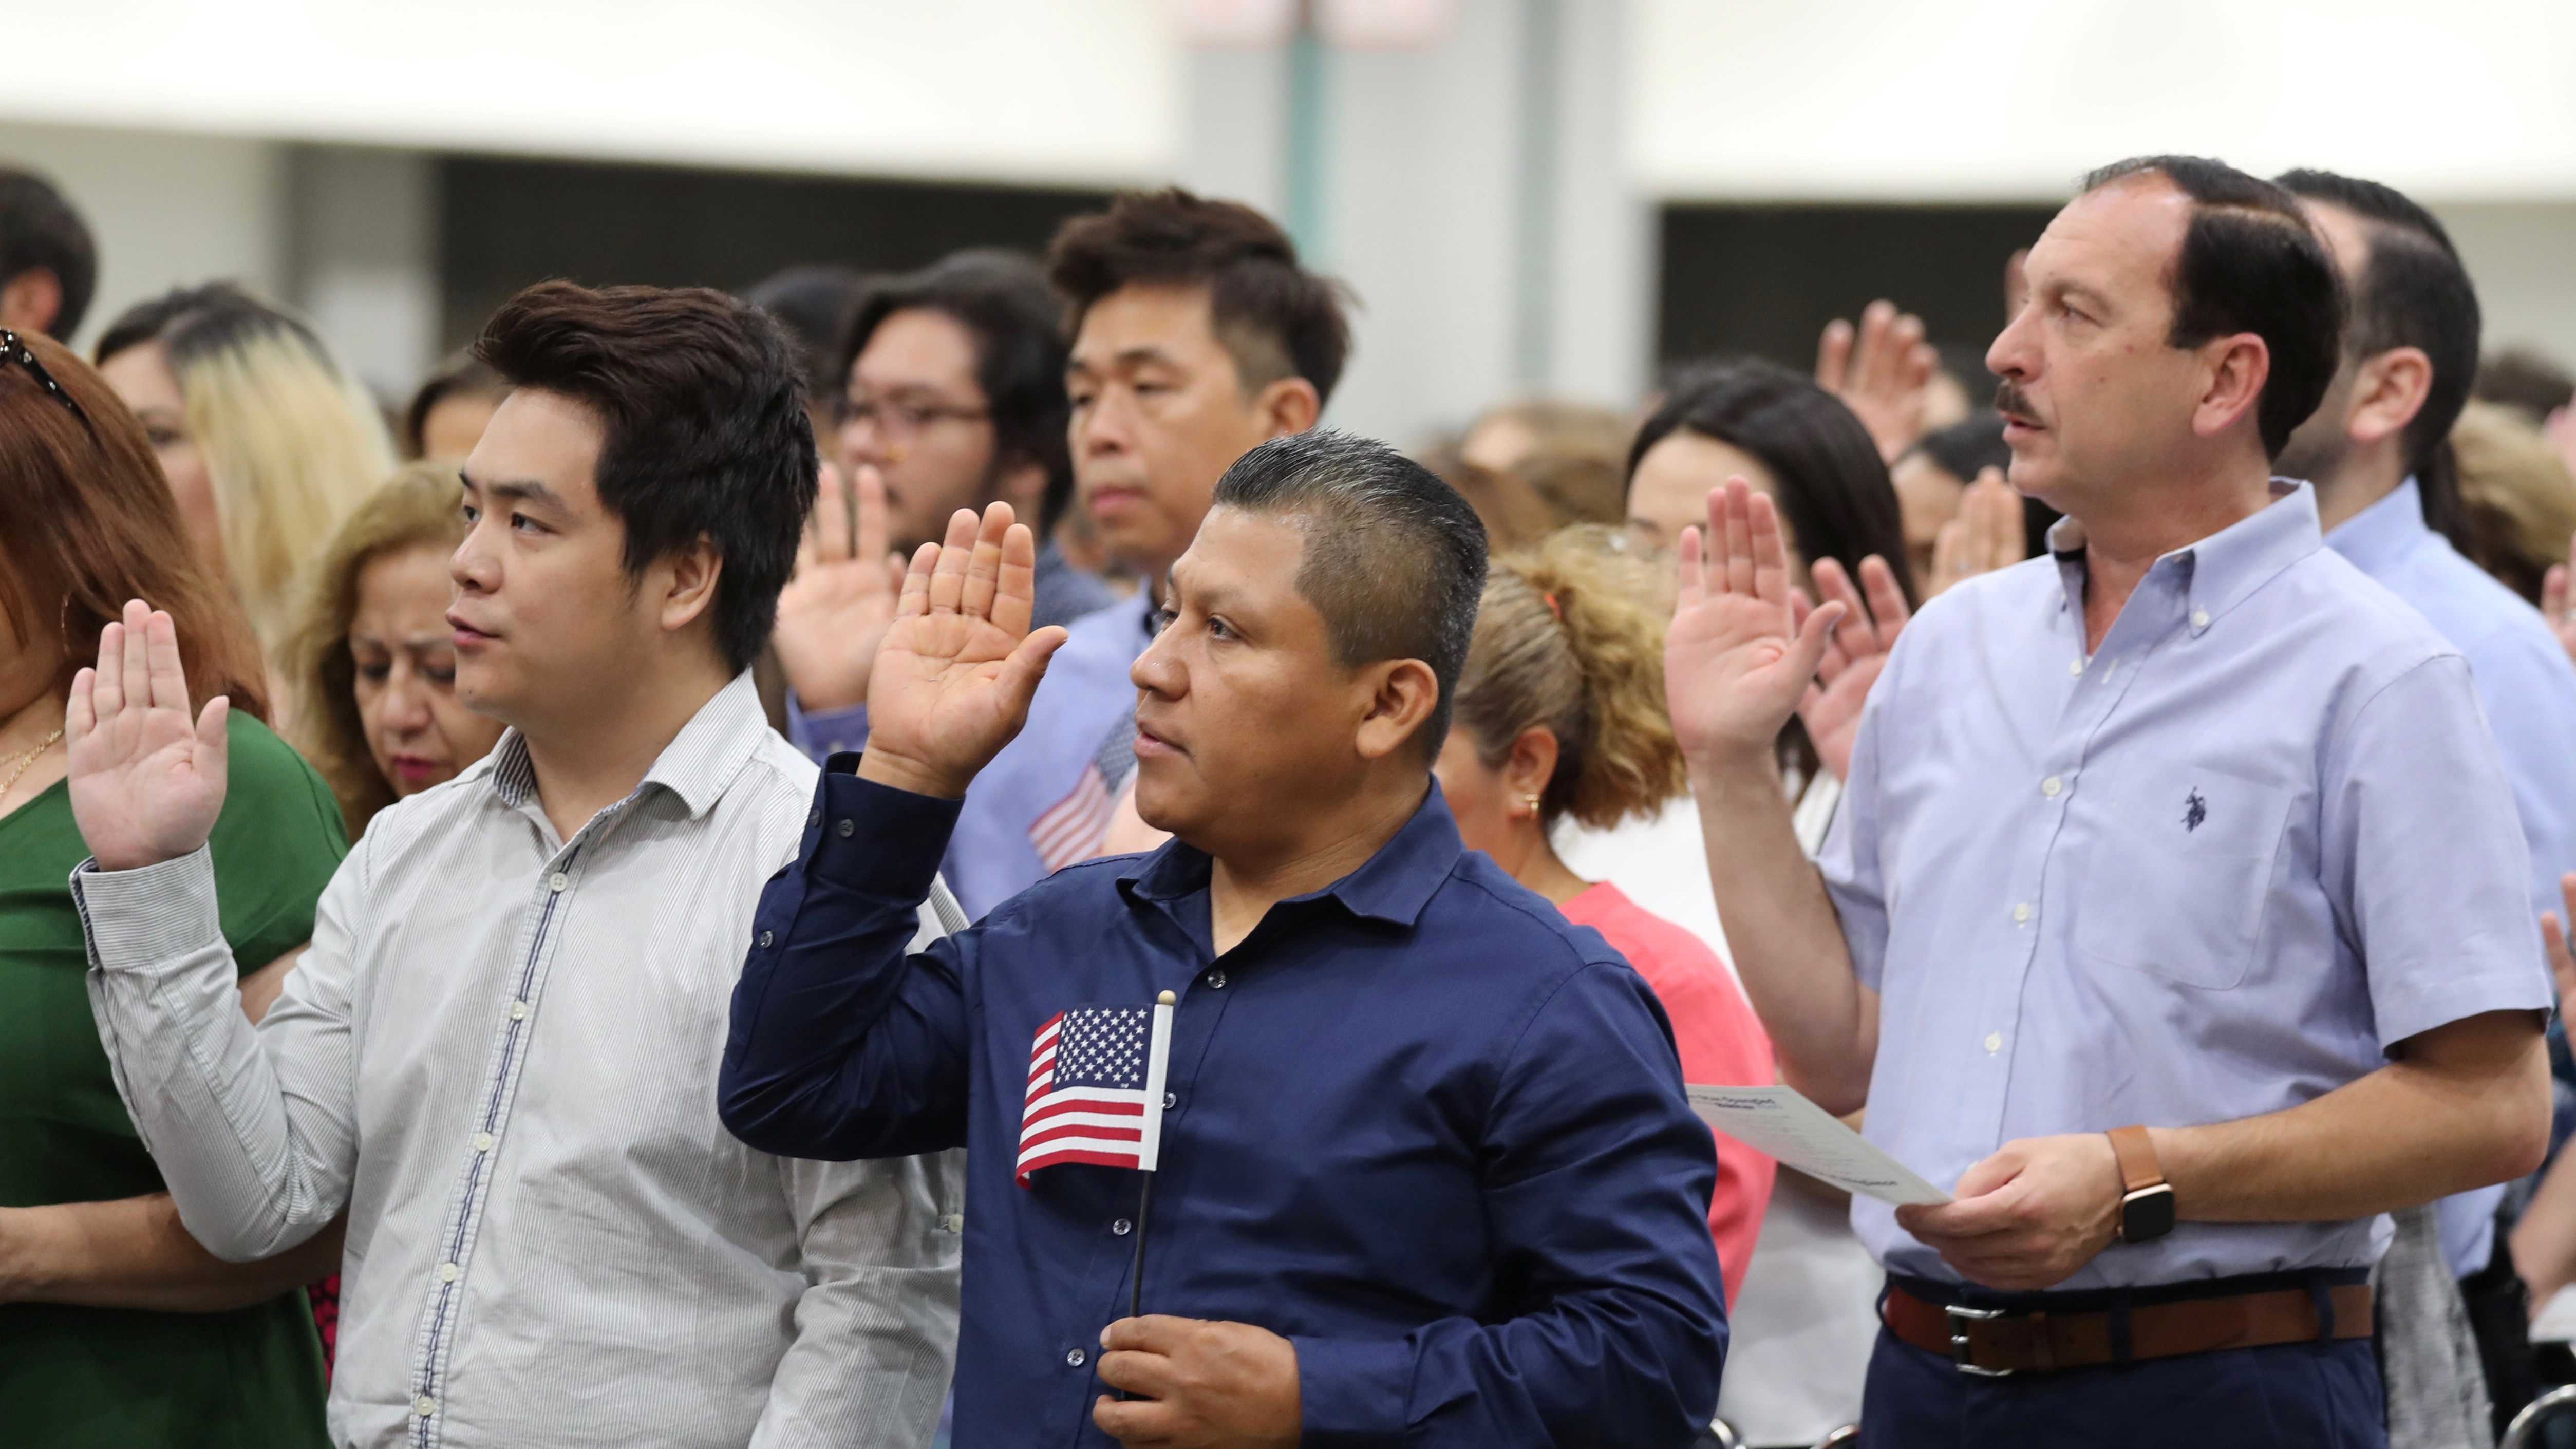 Immigrants are sworn in as new UScitizensat a naturalization ceremony in Los Angeles, Aug.22, 2019.